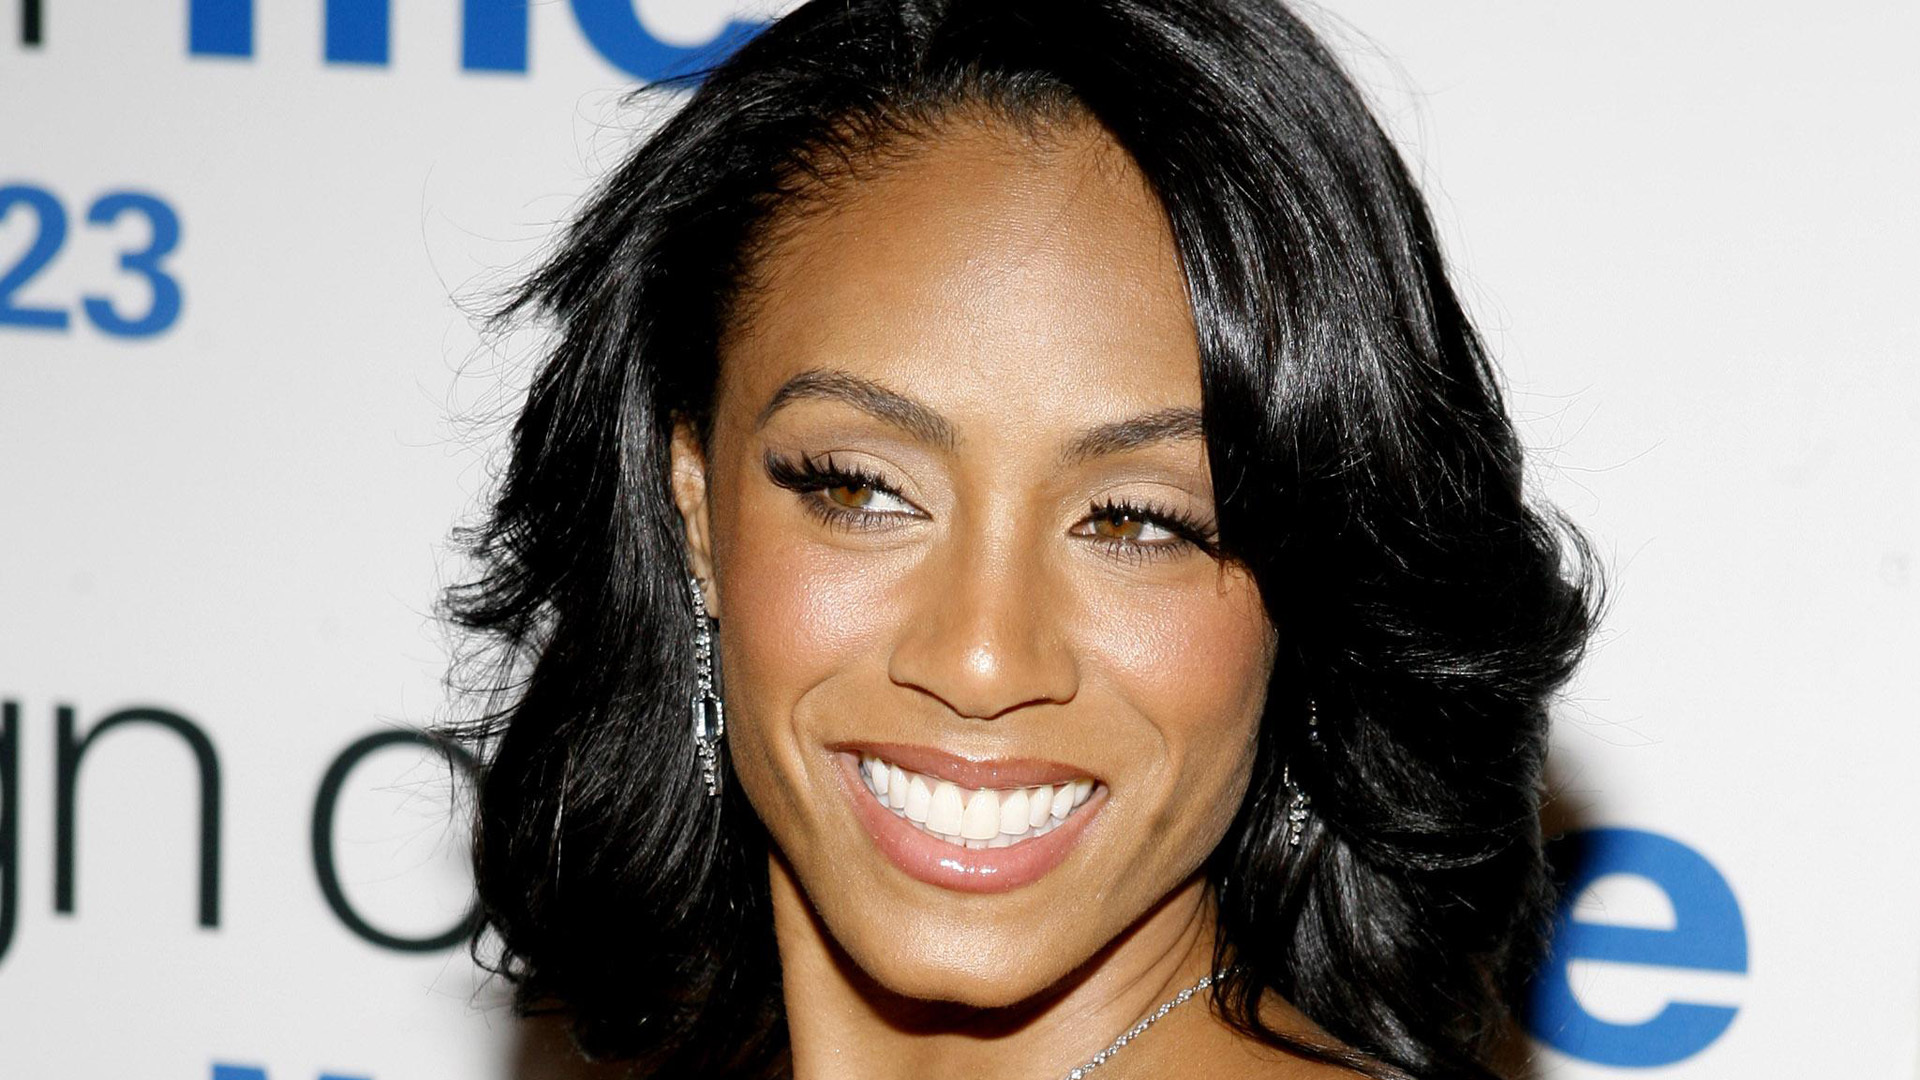 Jada Pinkett Smith Wallpapers Images Photos Pictures ...